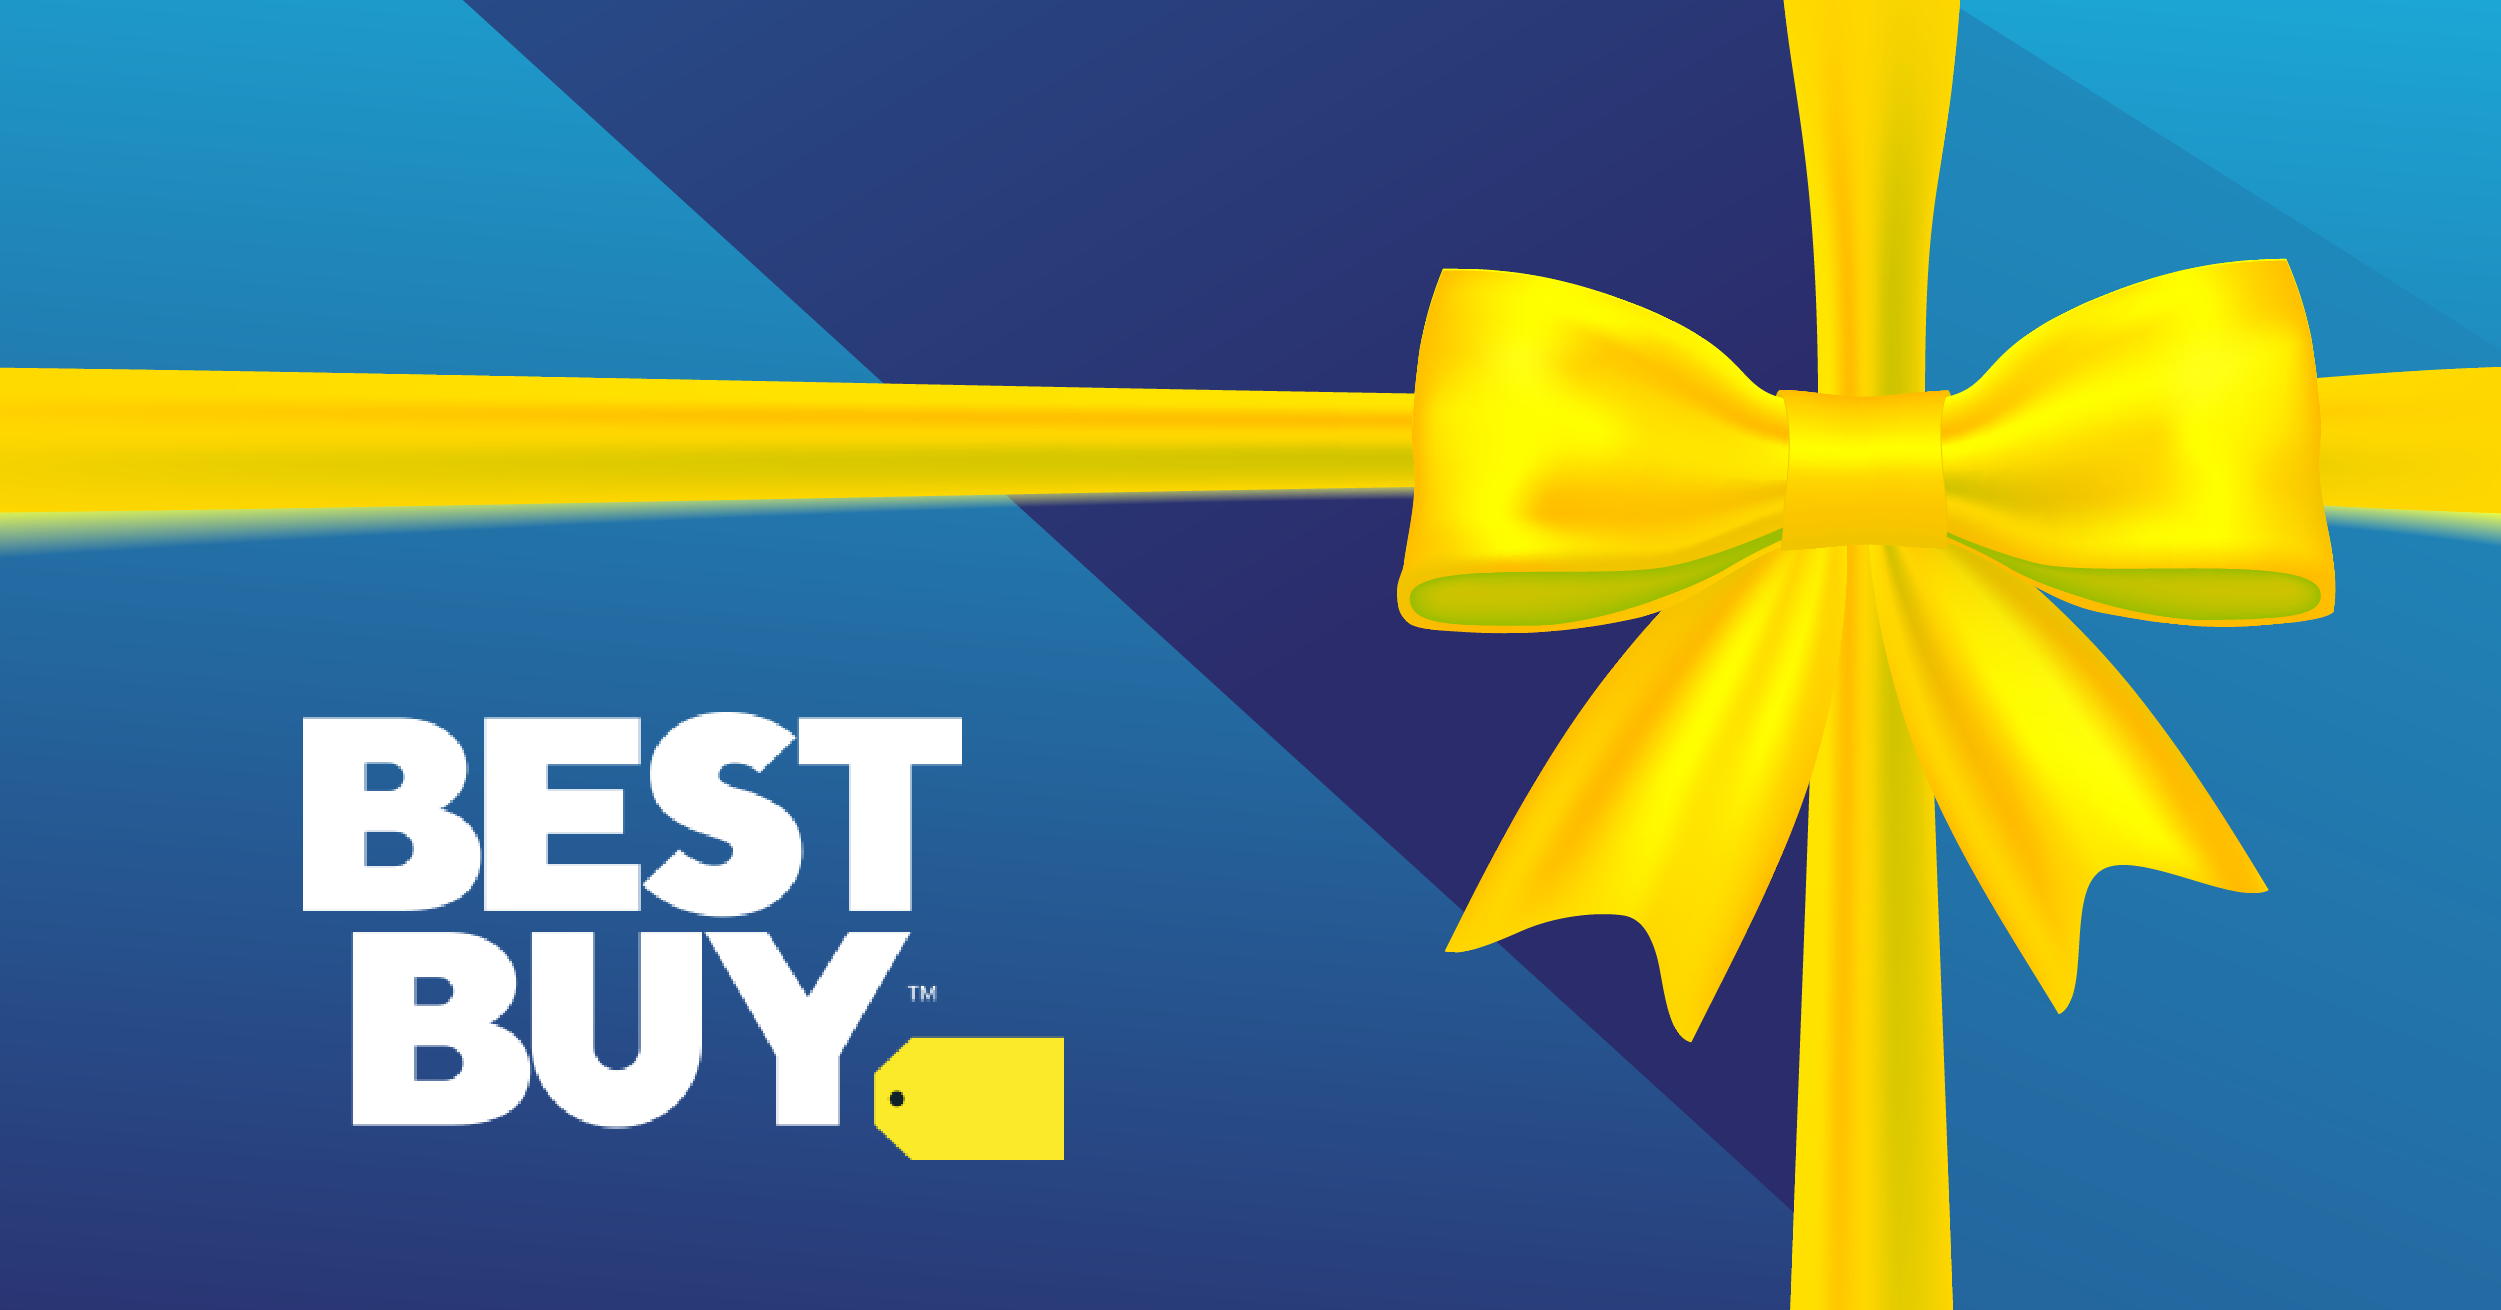 EJ Gift Cards - Up to 15% Off Best Buy Gift Cards